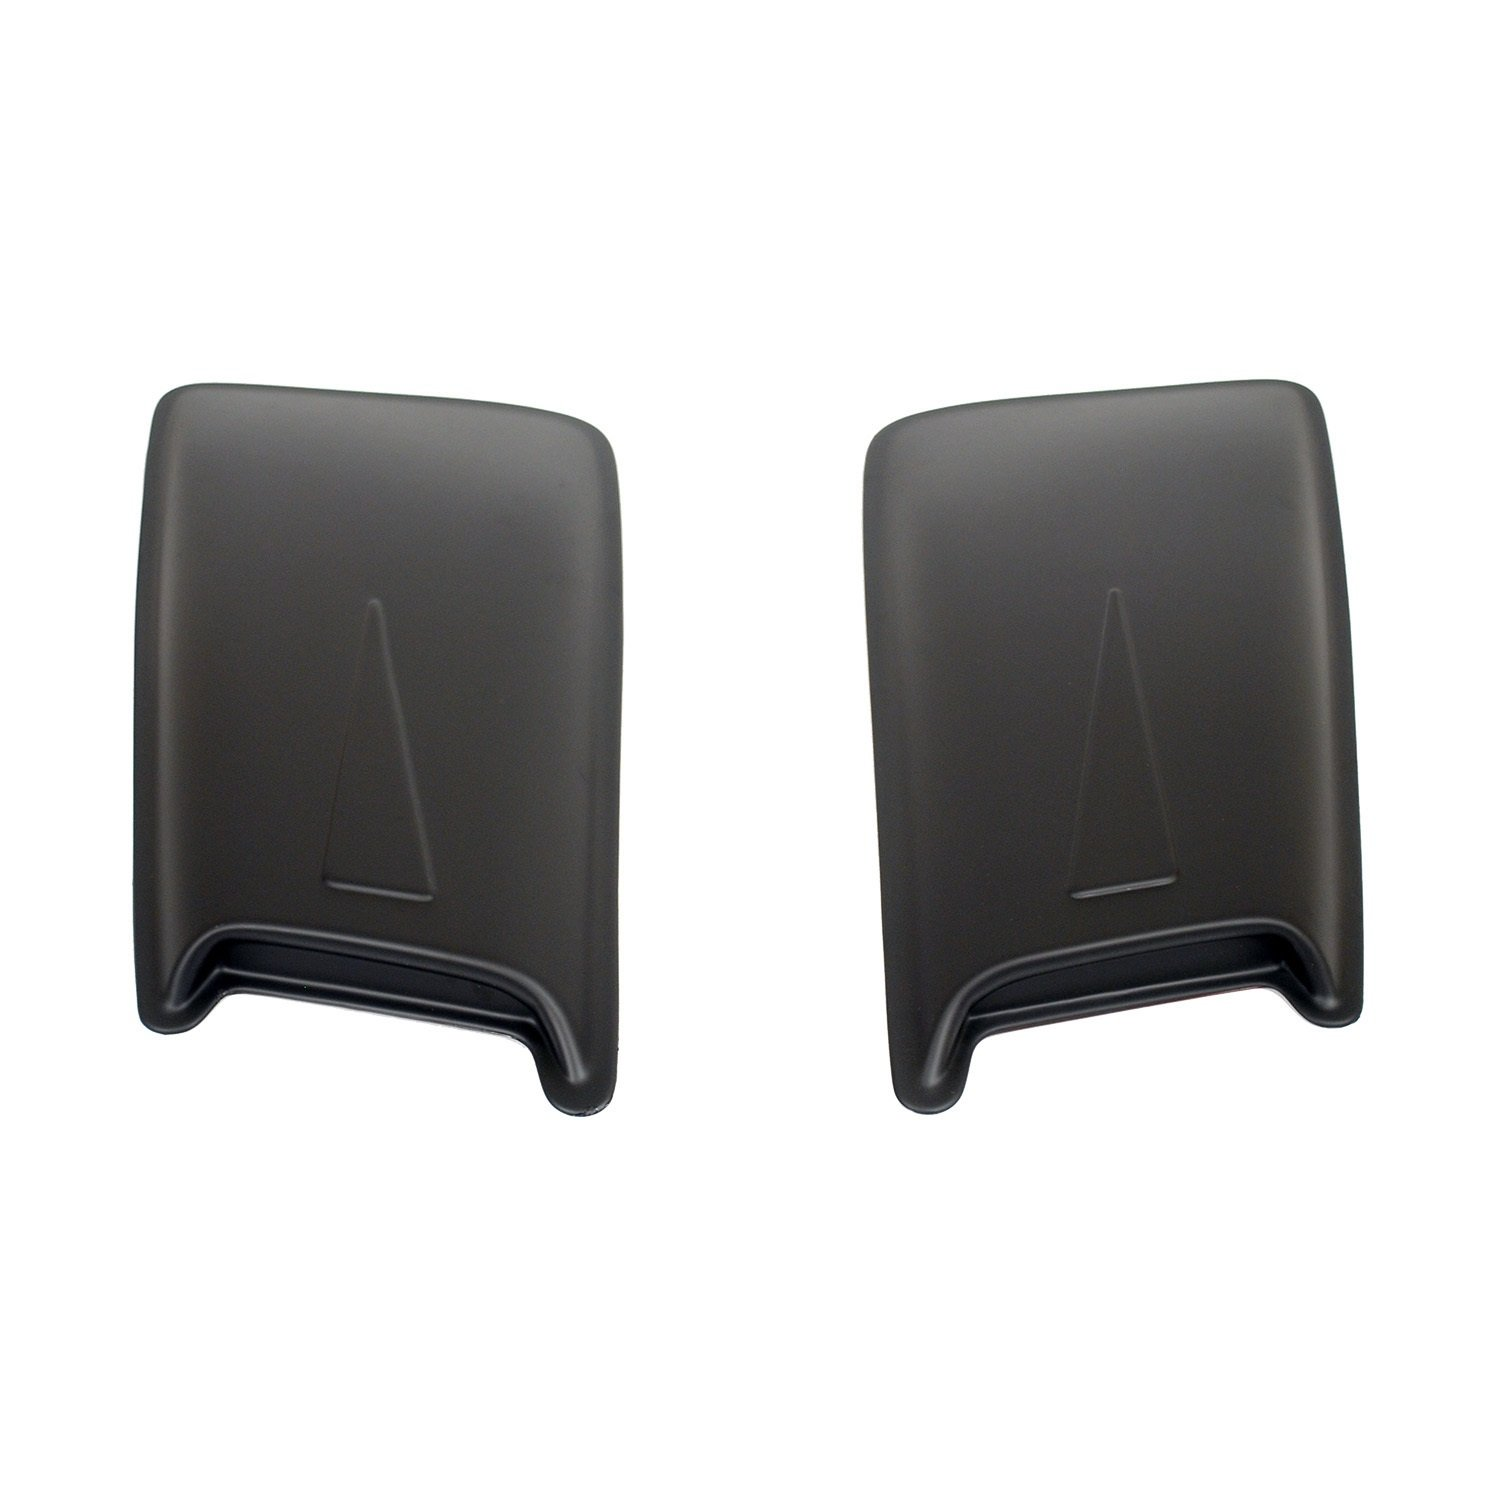 Wade 72-13012 24' Paintable Hood Scoops With Racing Accent  - Pack of 2 Westin 72-3012